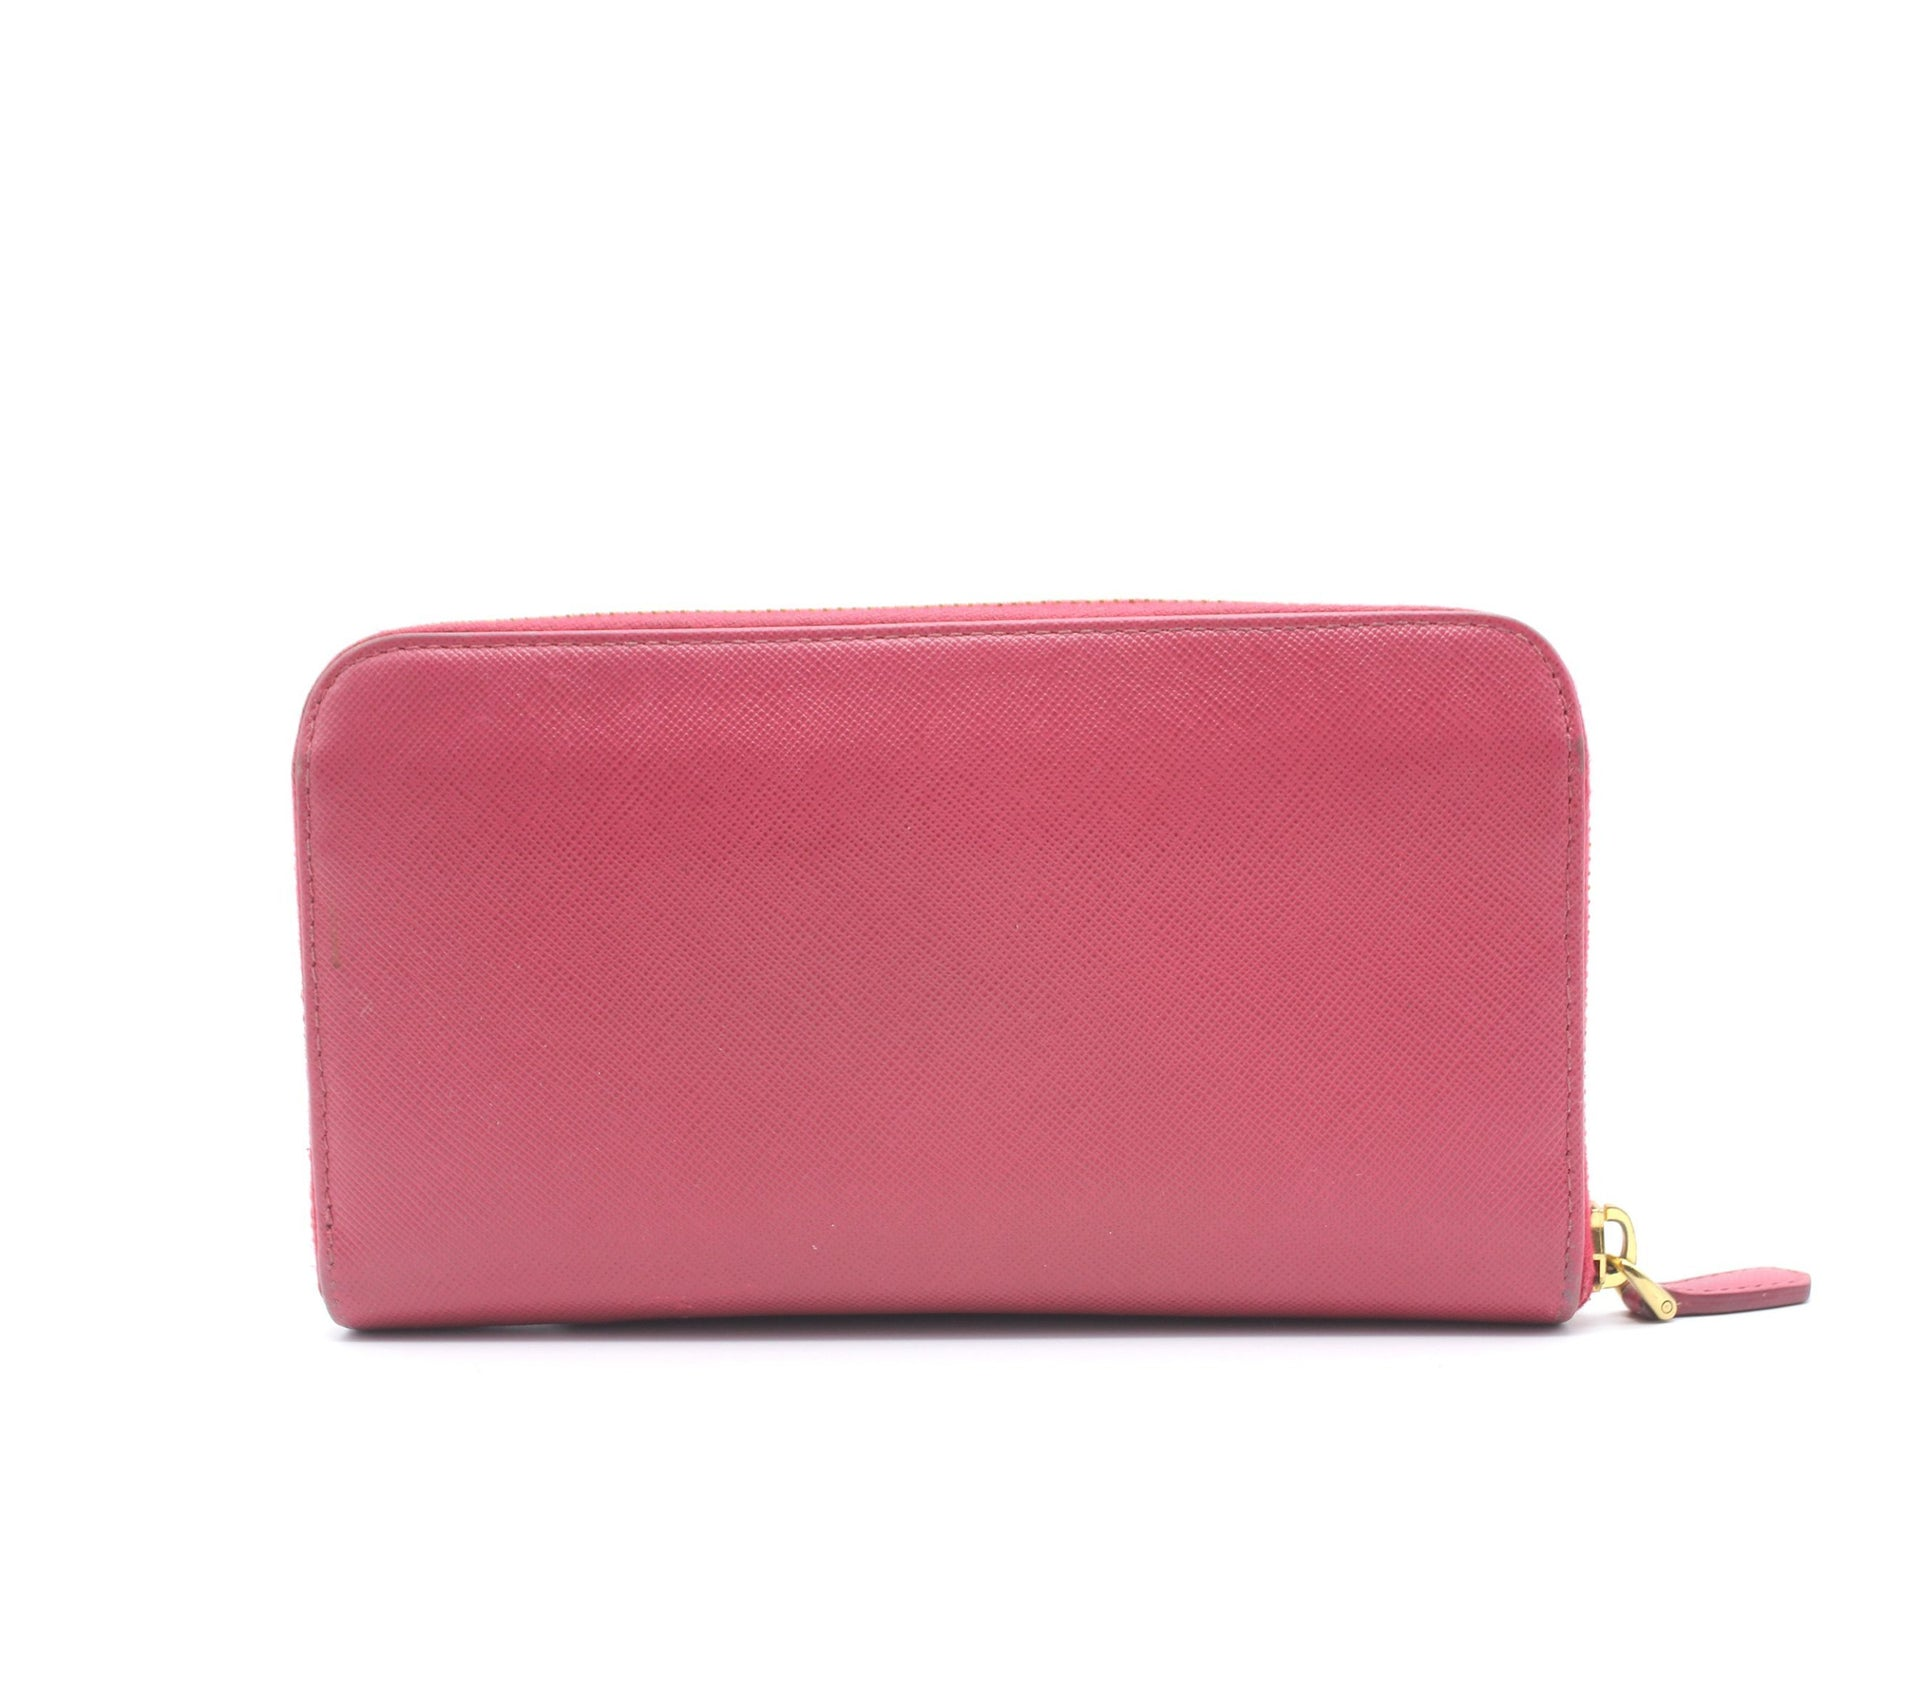 Prada Pink Saffiano Peonia Fiocco Bow Zip Around Wallet